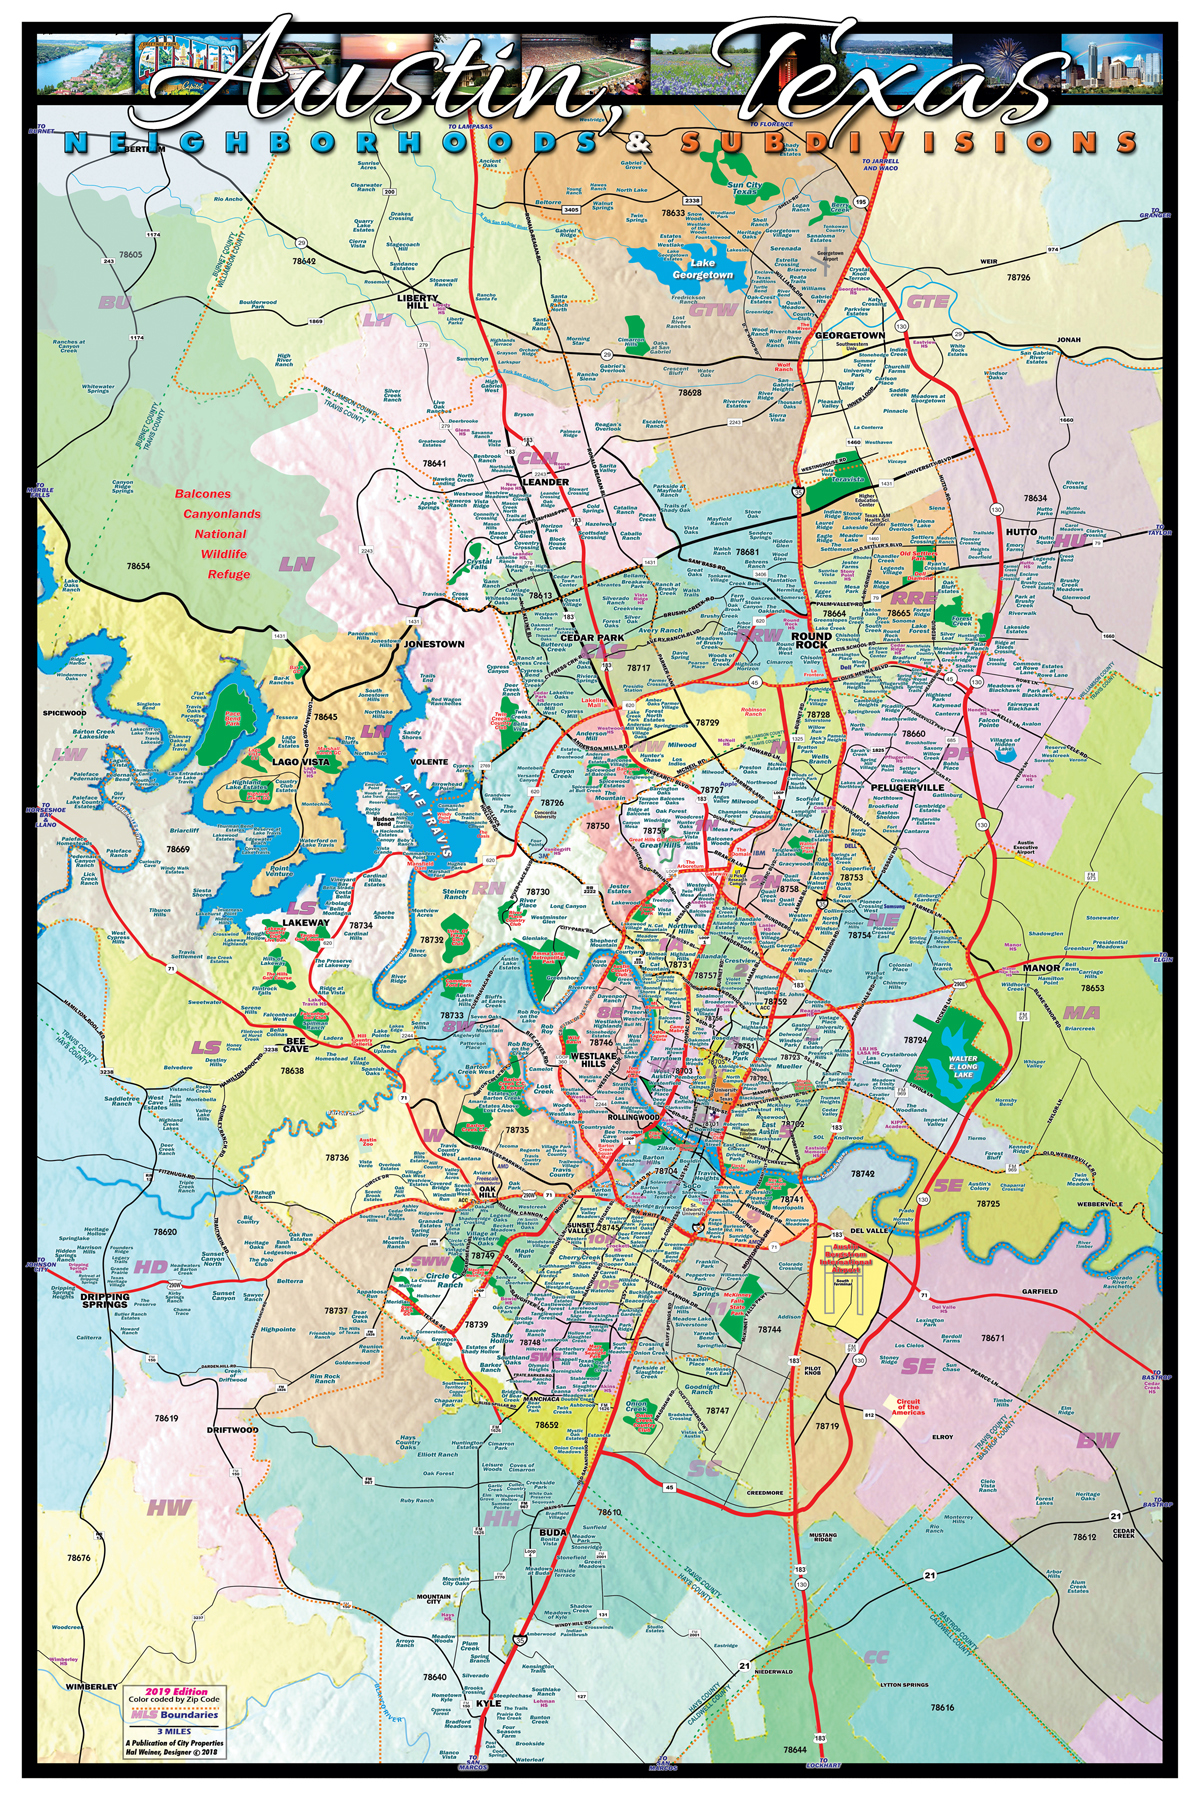 Austin Subdivision Map - Over 800 Neighborhoods And Subdivisions - Austin Texas Map